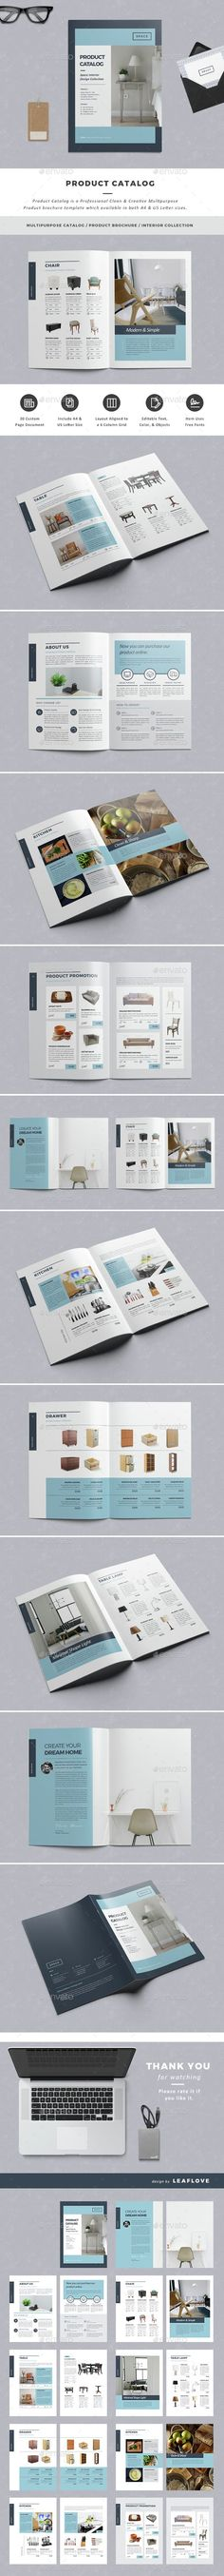 Product Catalog by LeafLove Product Catalog / Clean & Creative Multipurpose Product Brochure Template. This layout is suitable for any project purpose. Web Design, Layout Design, Print Design, Creative Design, Booklet Layout, Booklet Design, Product Catalog Template, Product Catalog Design, Product Catalogue